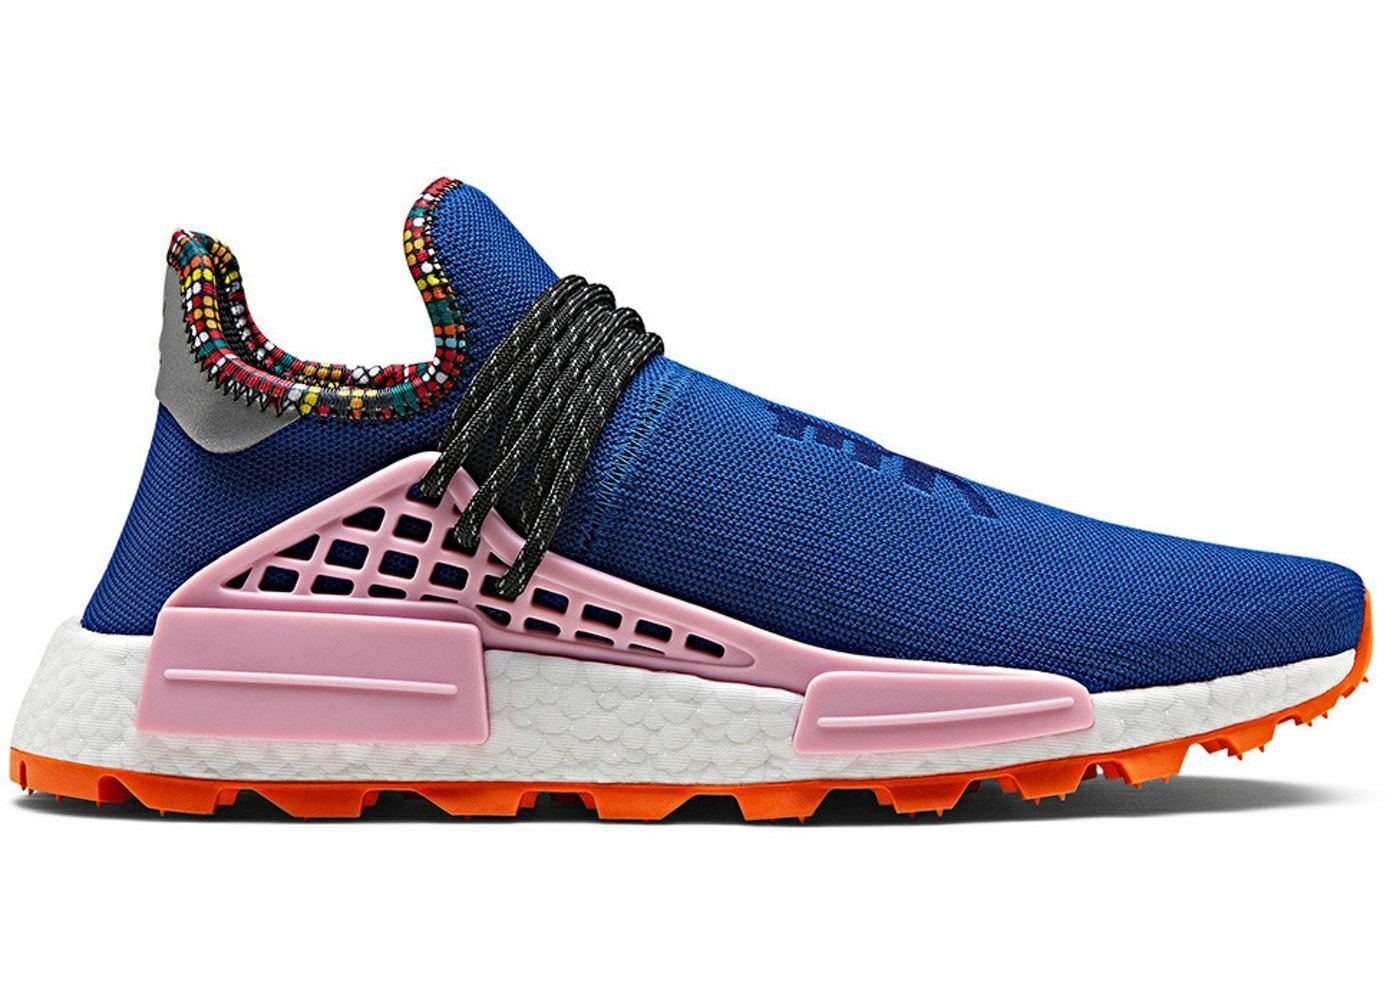 Adidas x Pharrell NMD Human Race Inspiration Pack bluee Light Pink orange EE7579